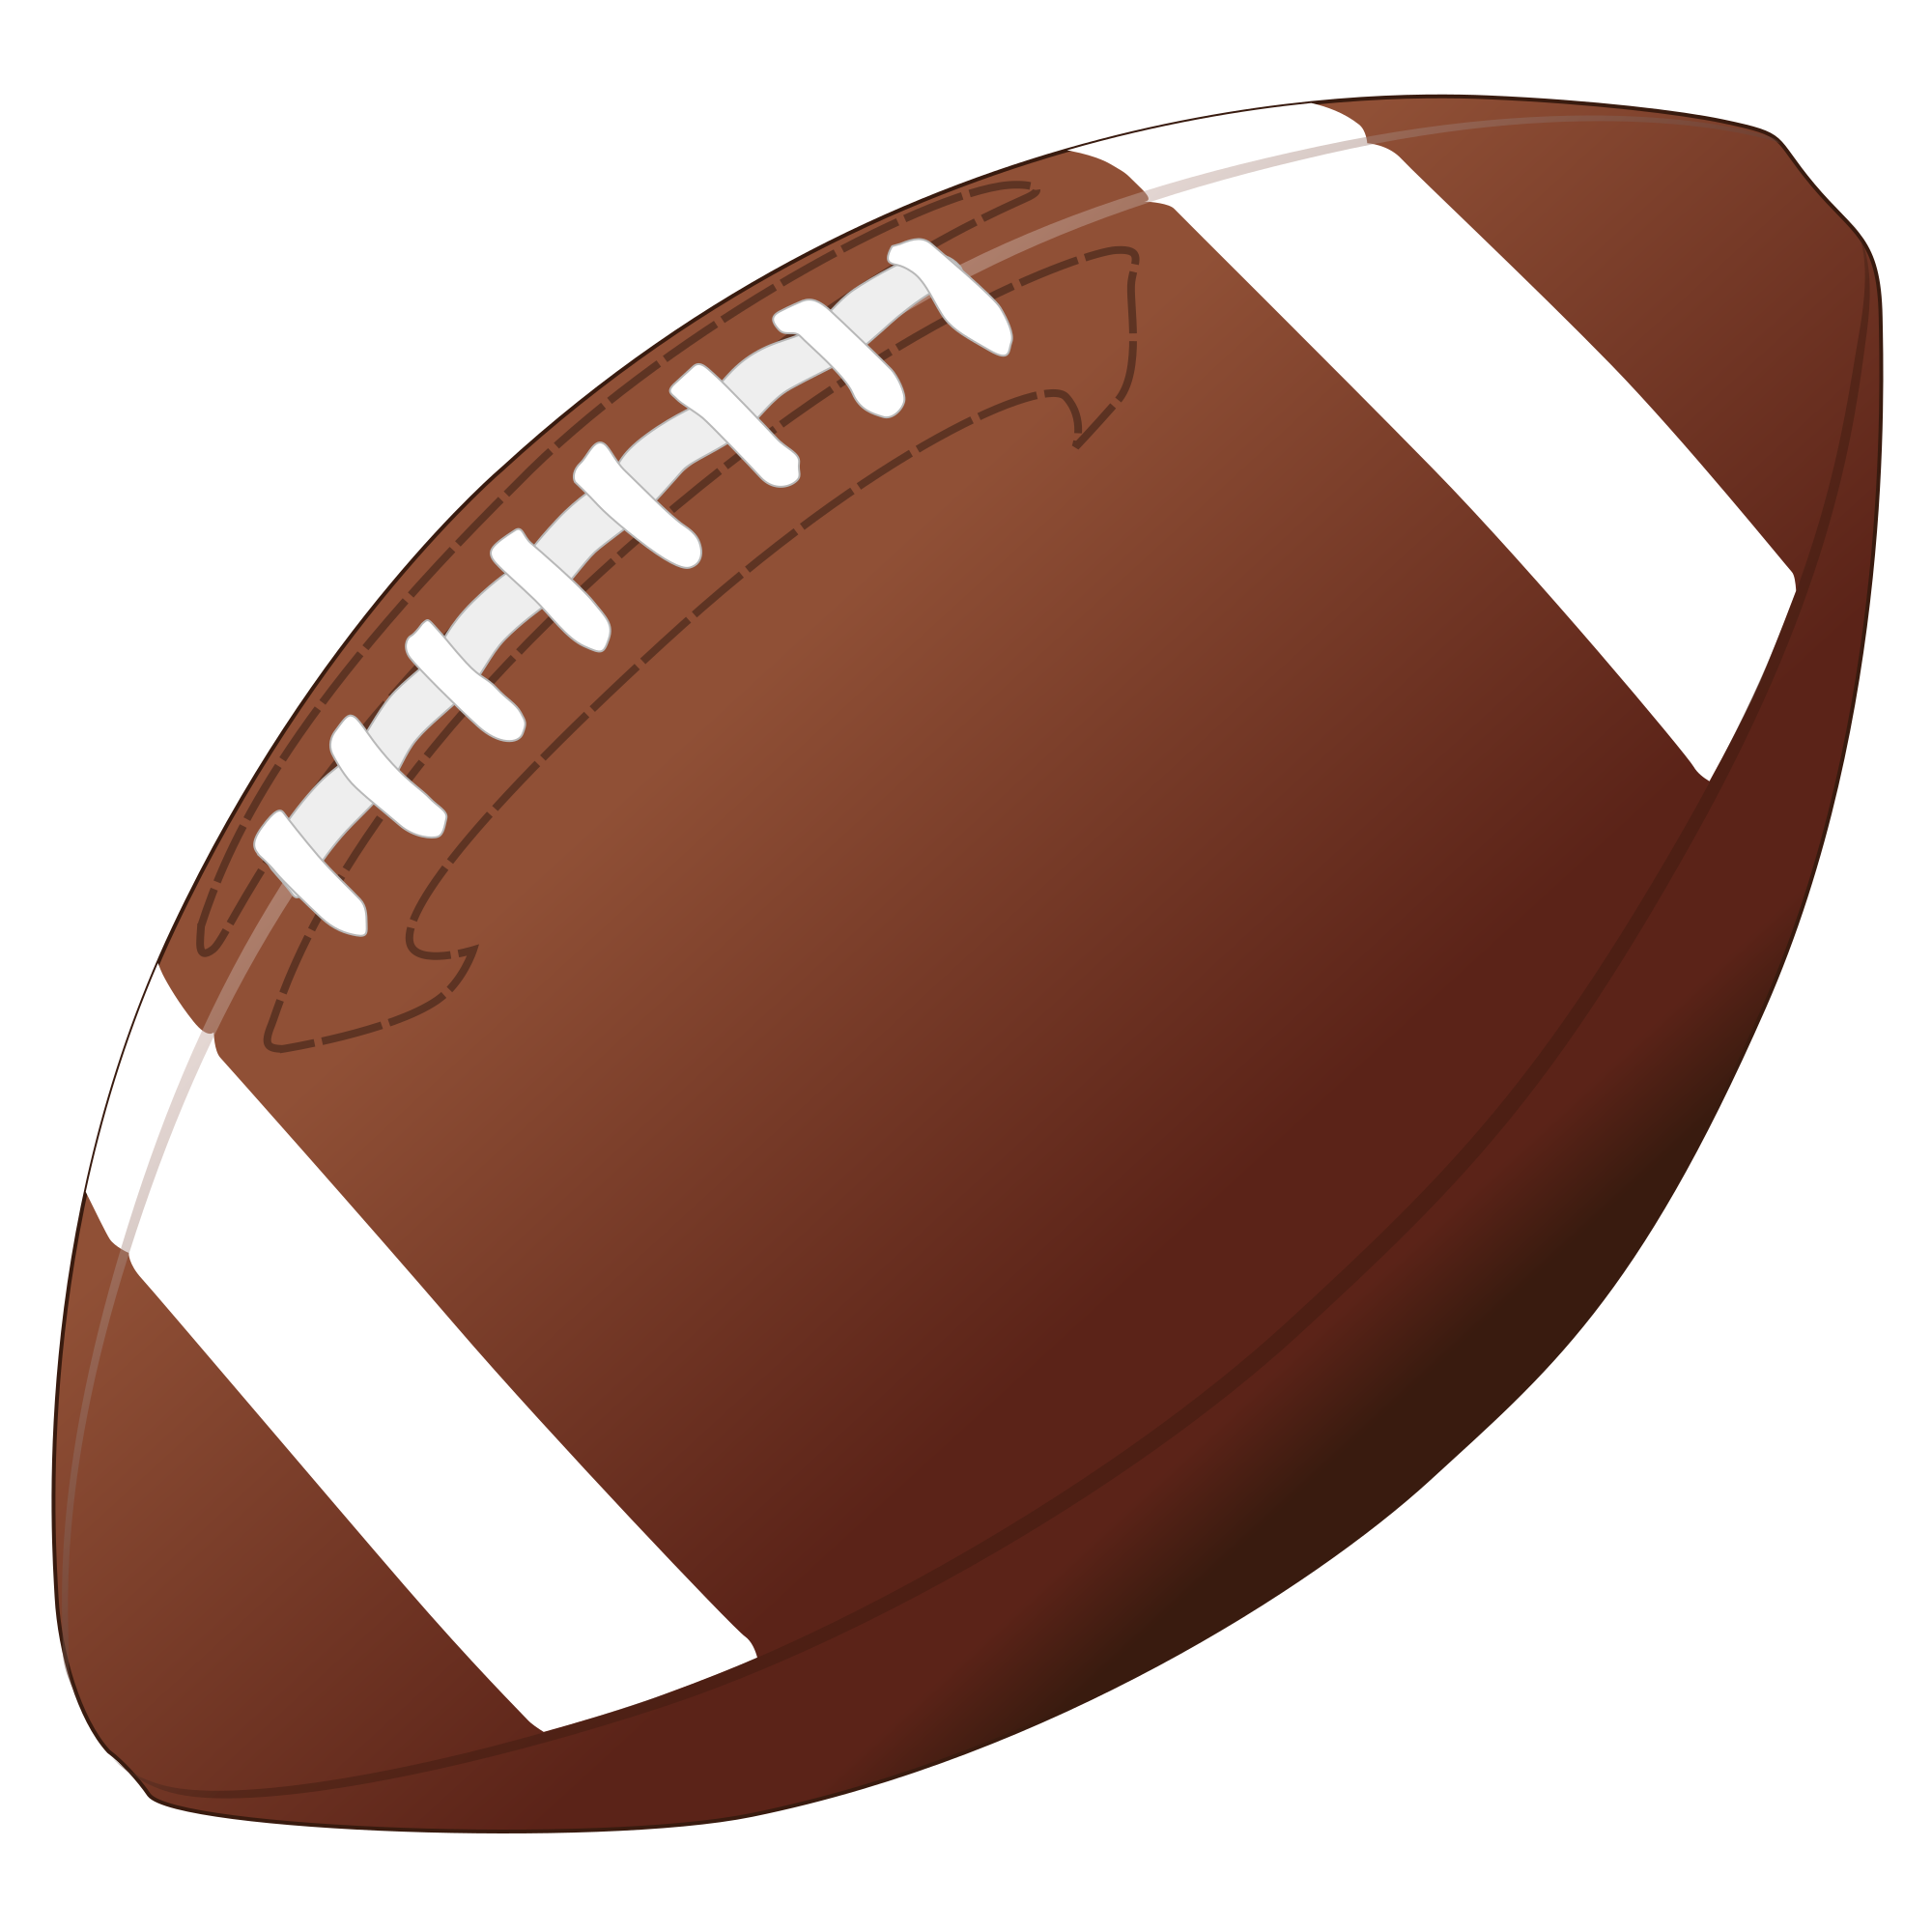 Football whistle clipart clipart library download American Football PNG Image - PurePNG | Free transparent CC0 PNG ... clipart library download